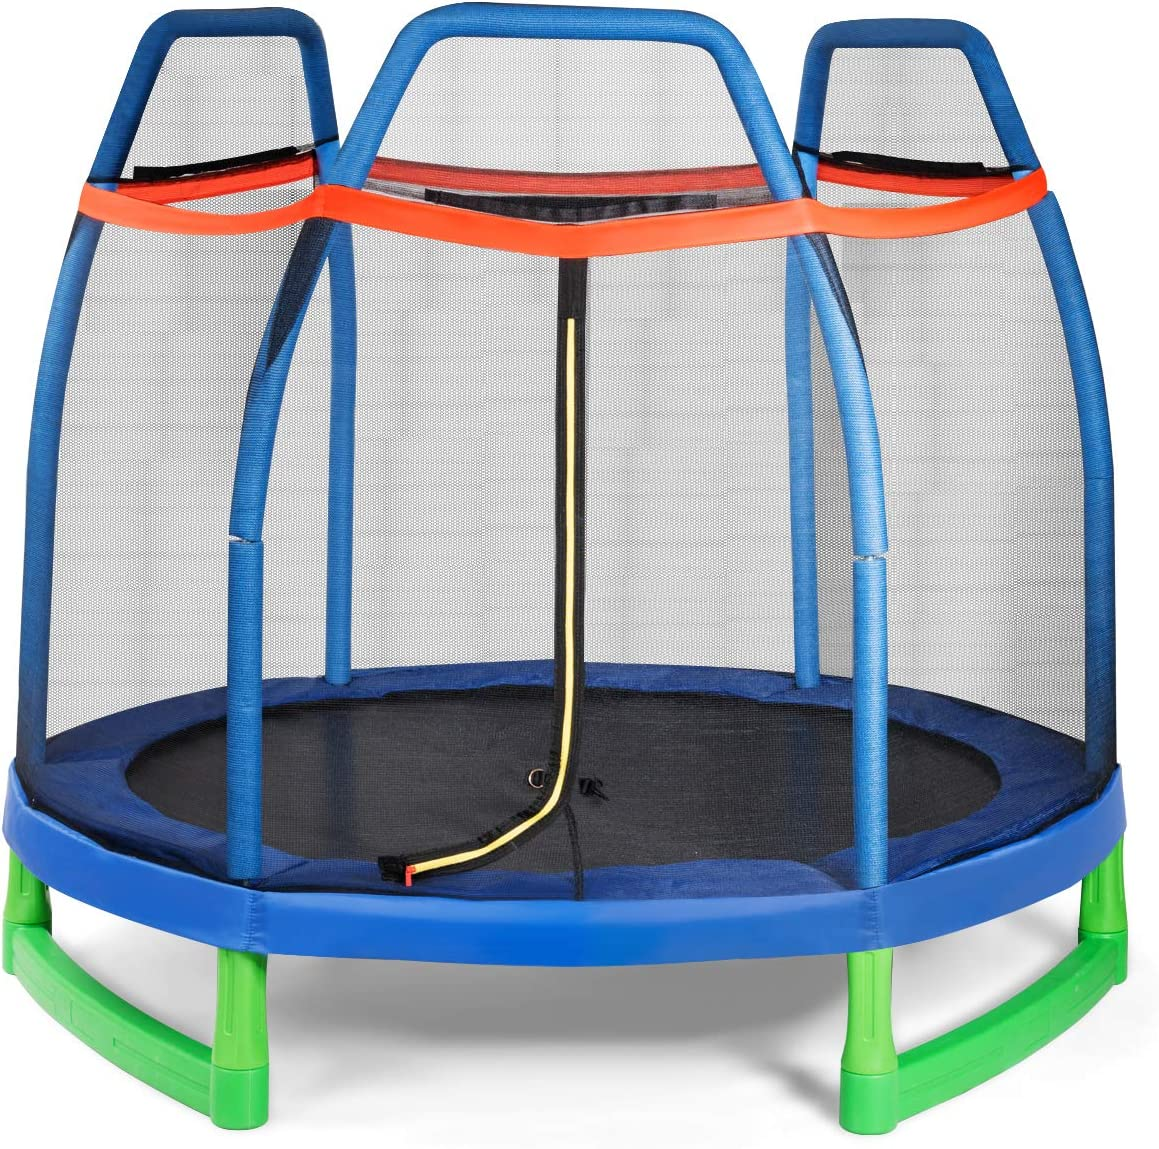 Giantex 7 Ft Kids Trampoline w Safety Enclosure Net, Spring Pad, Zipper, Heavy Duty Steel Frame, Mini Trampoline for Indoor Outdoor, Great Gifts for Kids